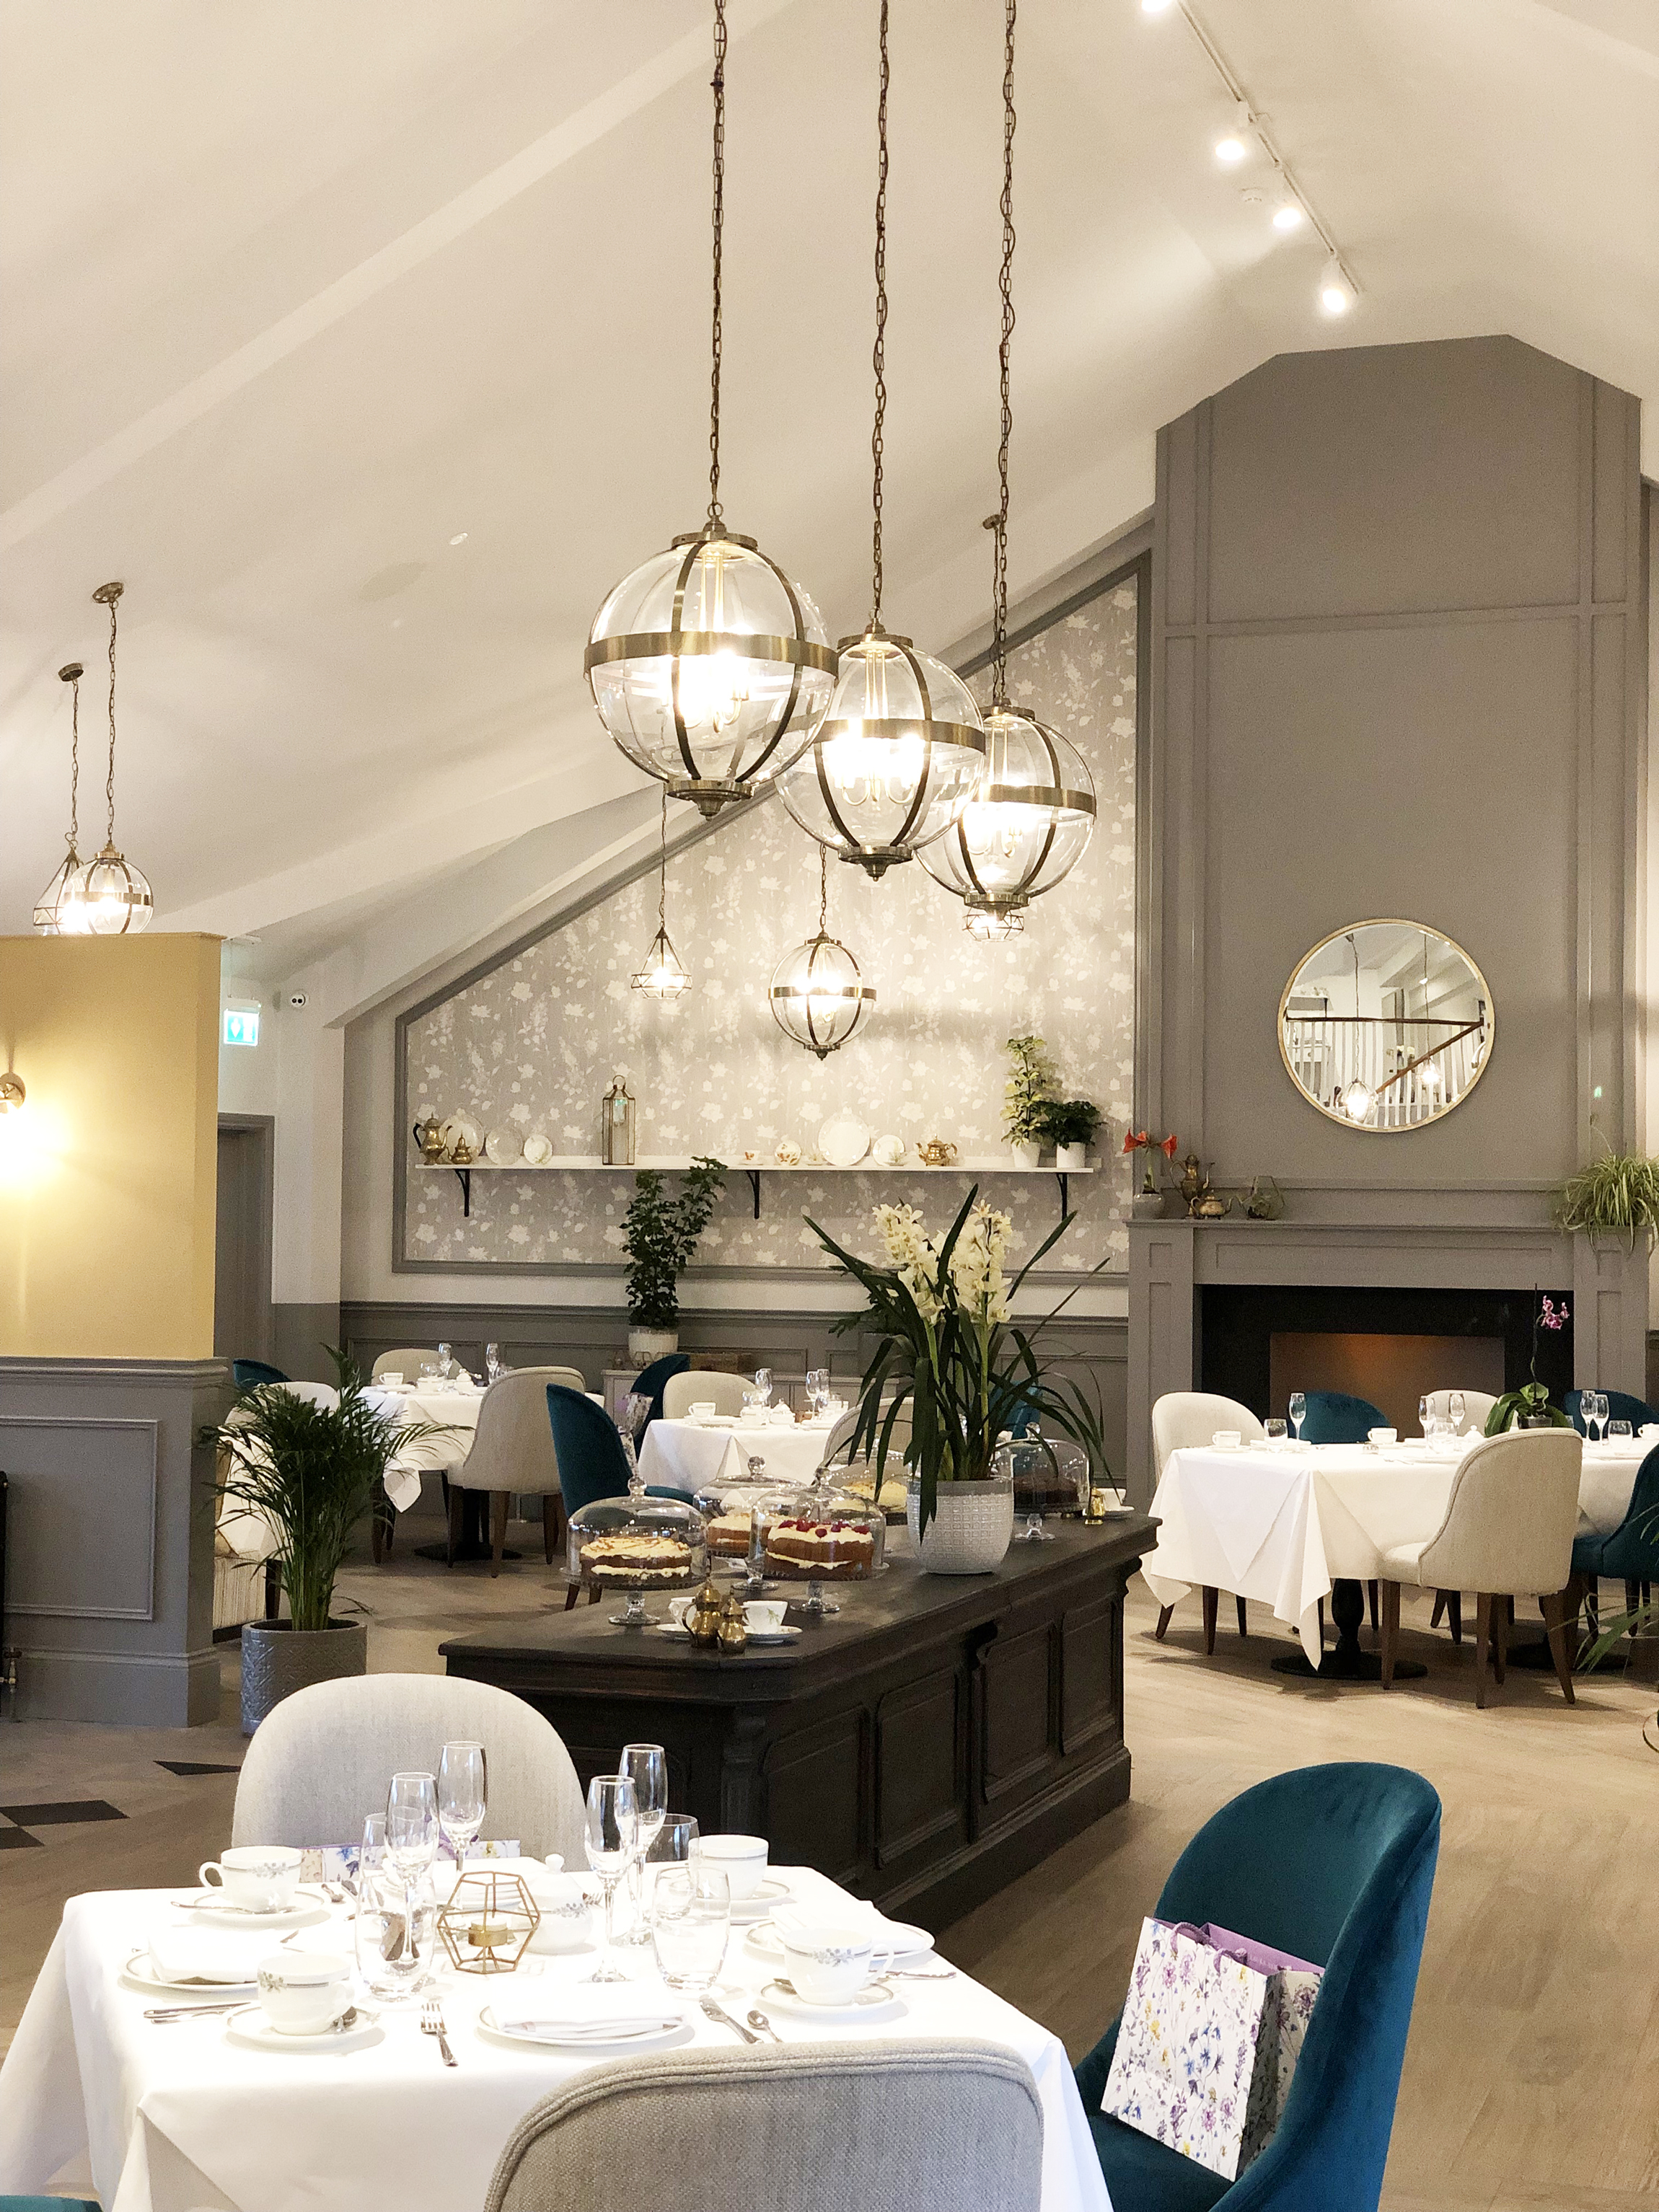 INSIDE THE LAURA ASHLEY TEA ROOM AT HIGHBULLEN HOTEL